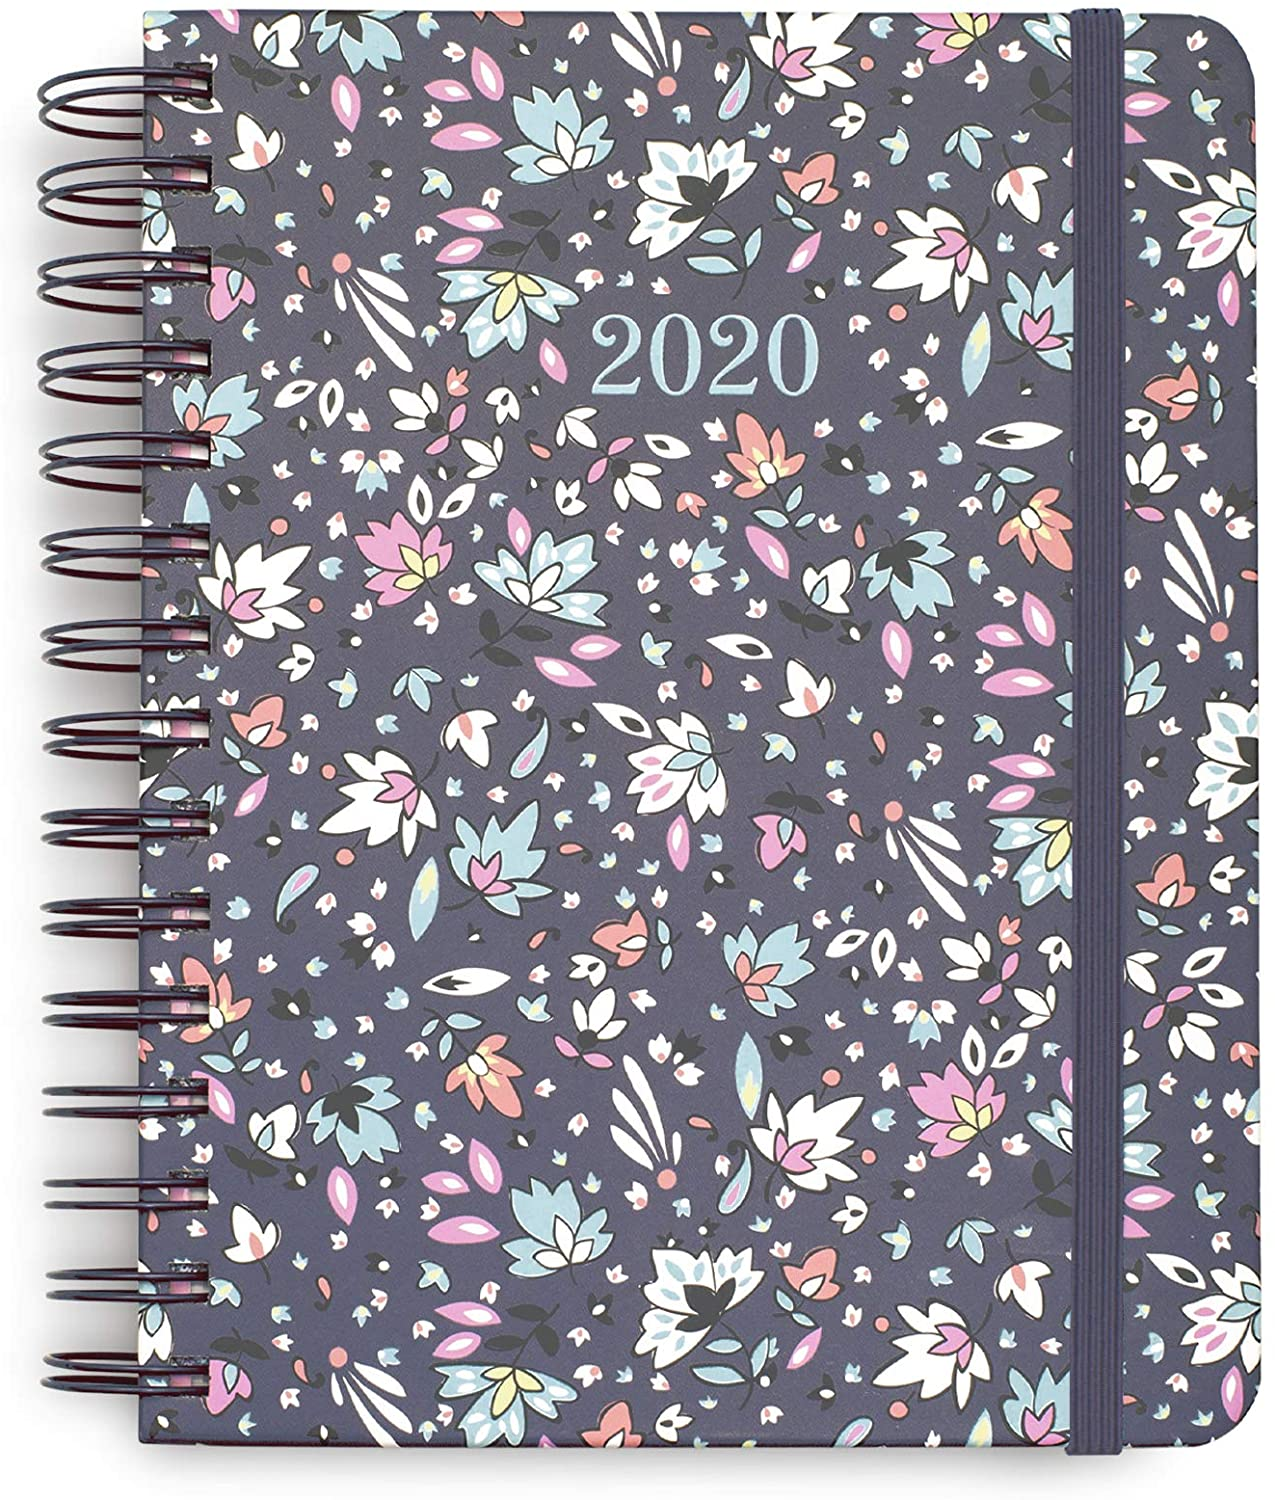 Vera Bradley 2020-2021 Planner Daily Weekly & Monthly, 17 Month Medium Hardcover Personal Planner Dated Aug 2020-Dec 2021 with Stickers, Holidays/Notes Pages, Pocket, Monthly Tabs, Bonbon Ditsy